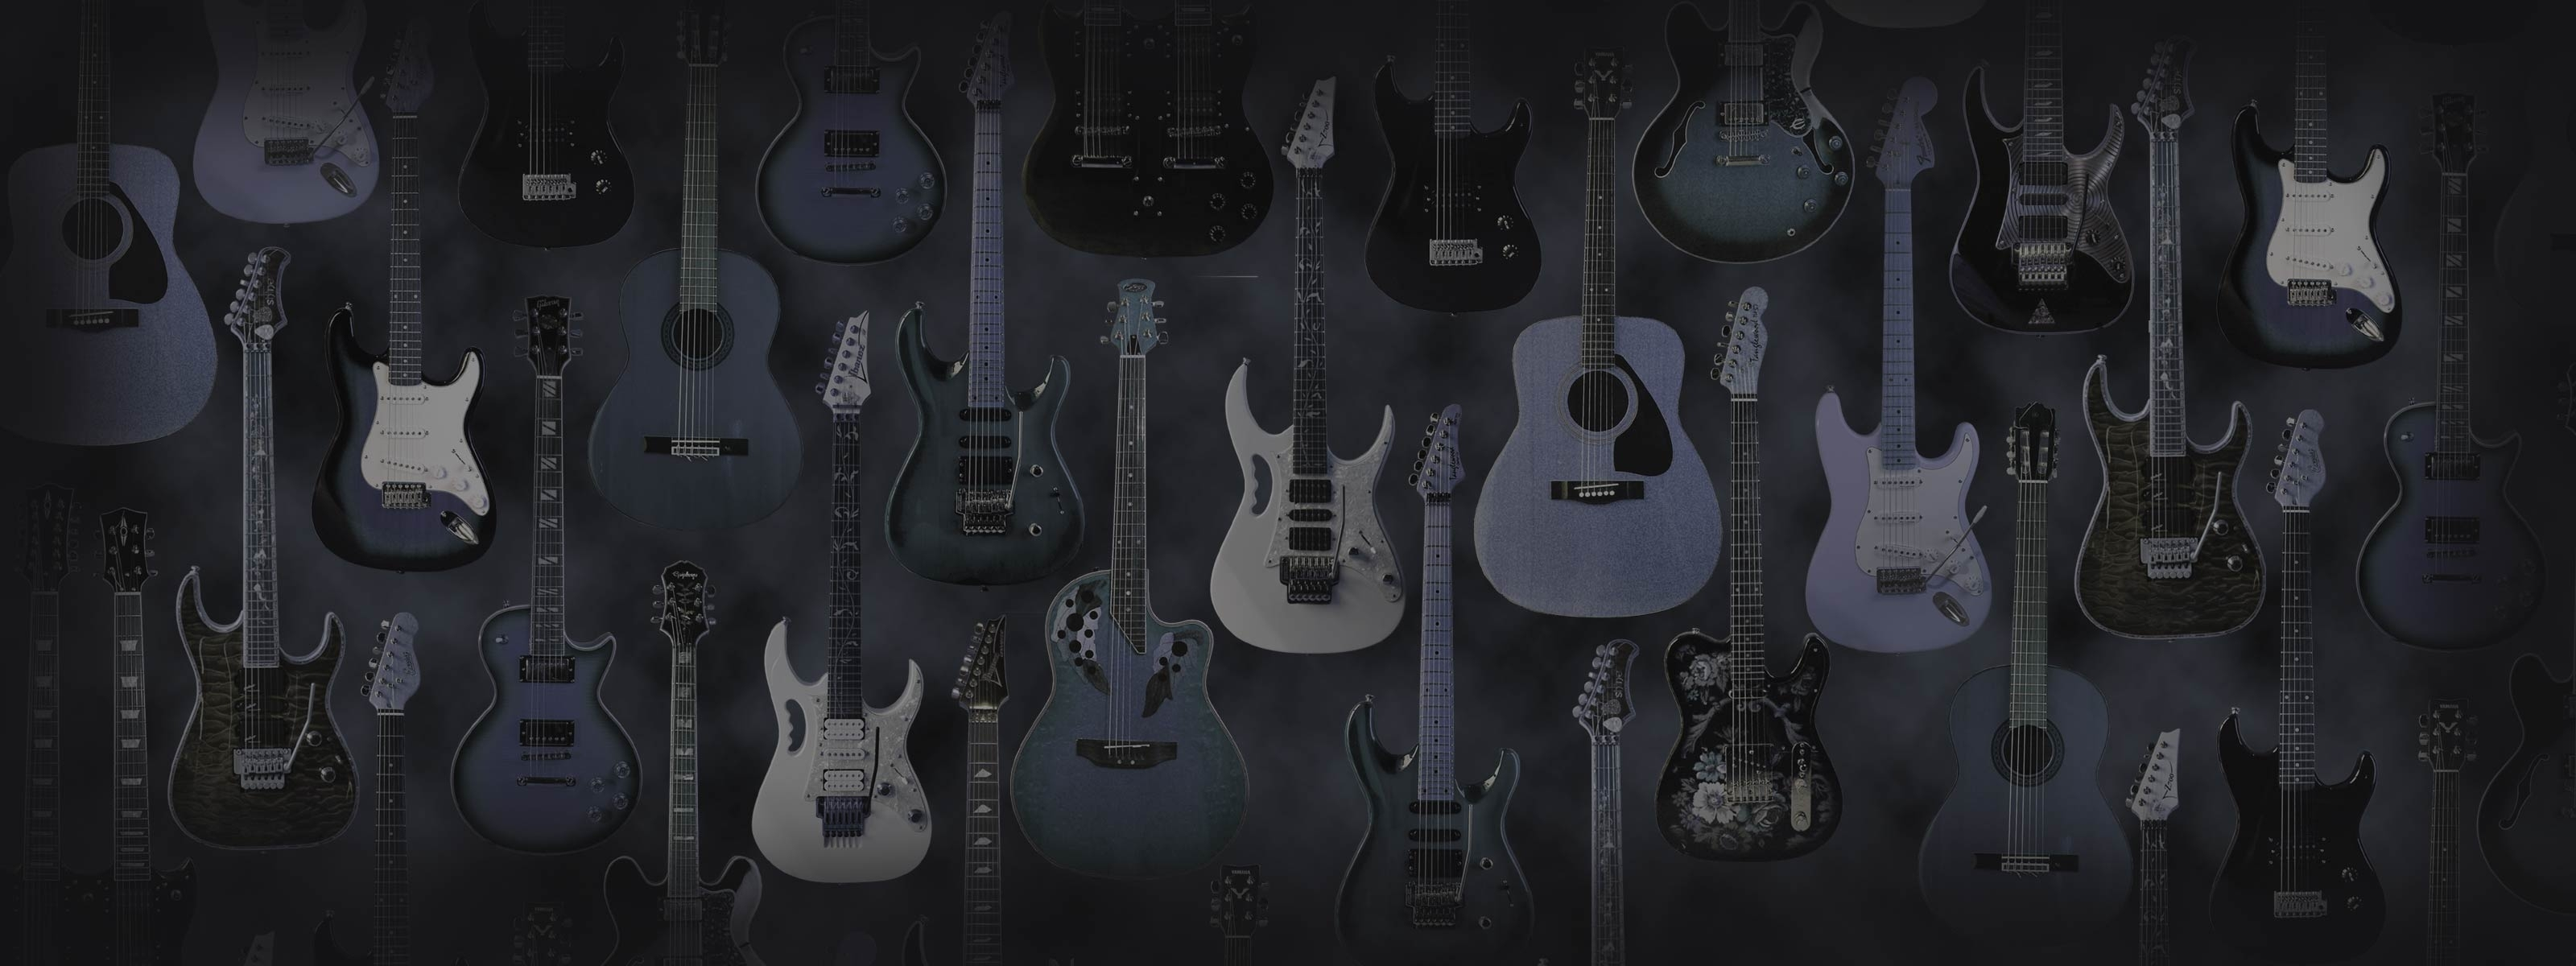 dual monitor guitar wallpapers, from gch guitar academy